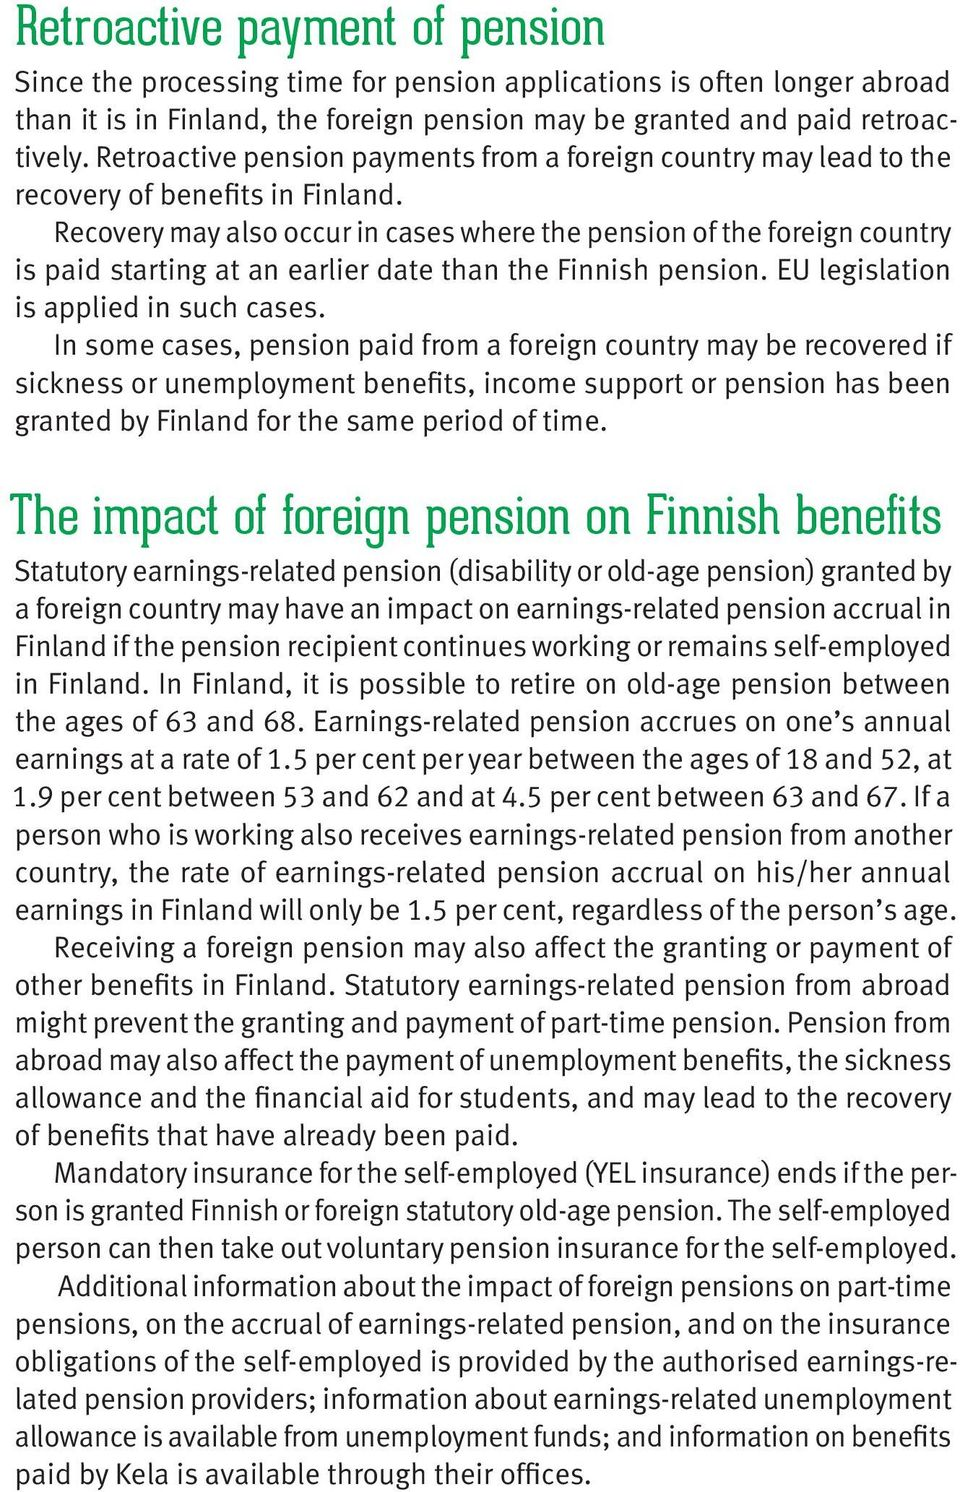 Recovery may also occur in cases where the pension of the foreign country is paid starting at an earlier date than the Finnish pension. EU legislation is applied in such cases.